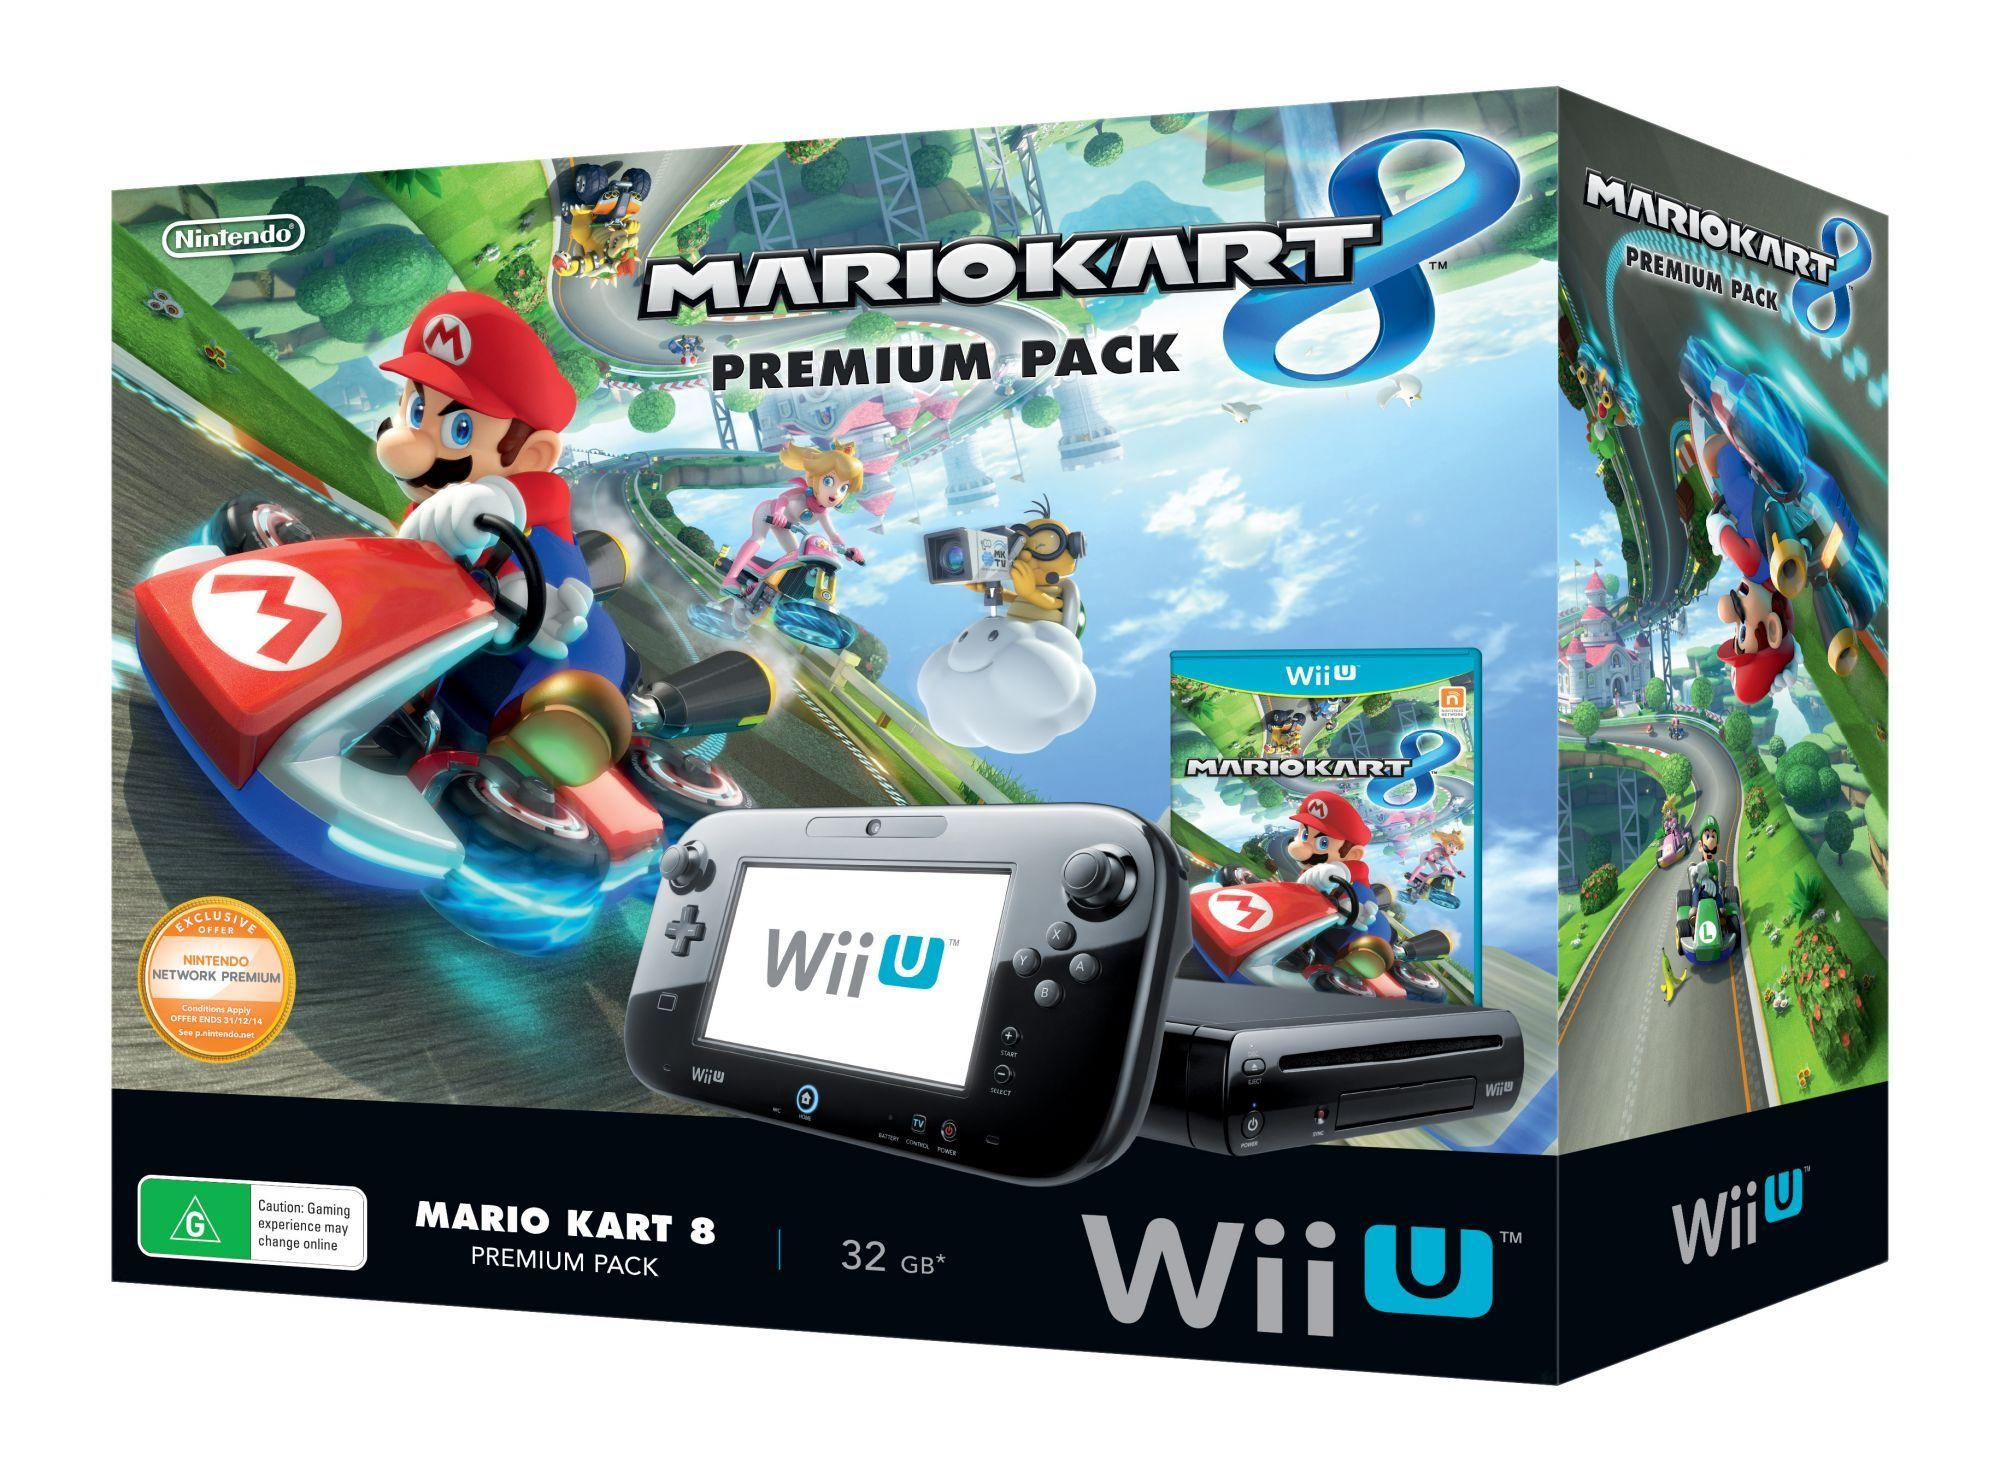 wii u premium pack mario kart 8 unboxing. Black Bedroom Furniture Sets. Home Design Ideas